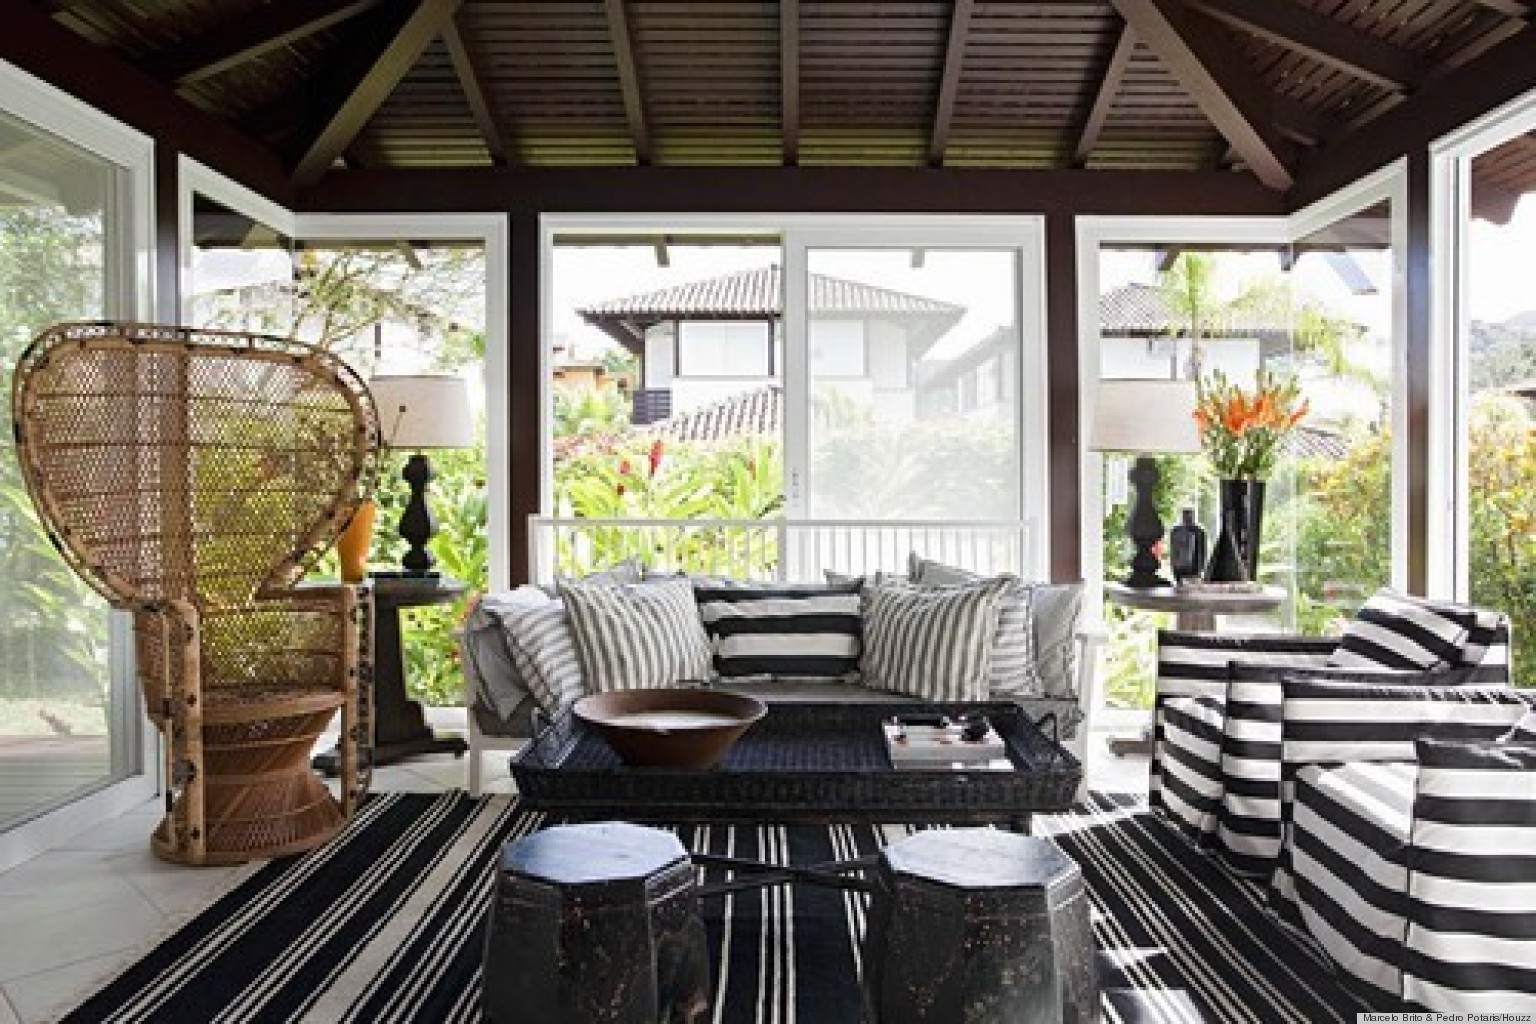 10 Impressive Sunrooms That We Need To Sip Lemonade In